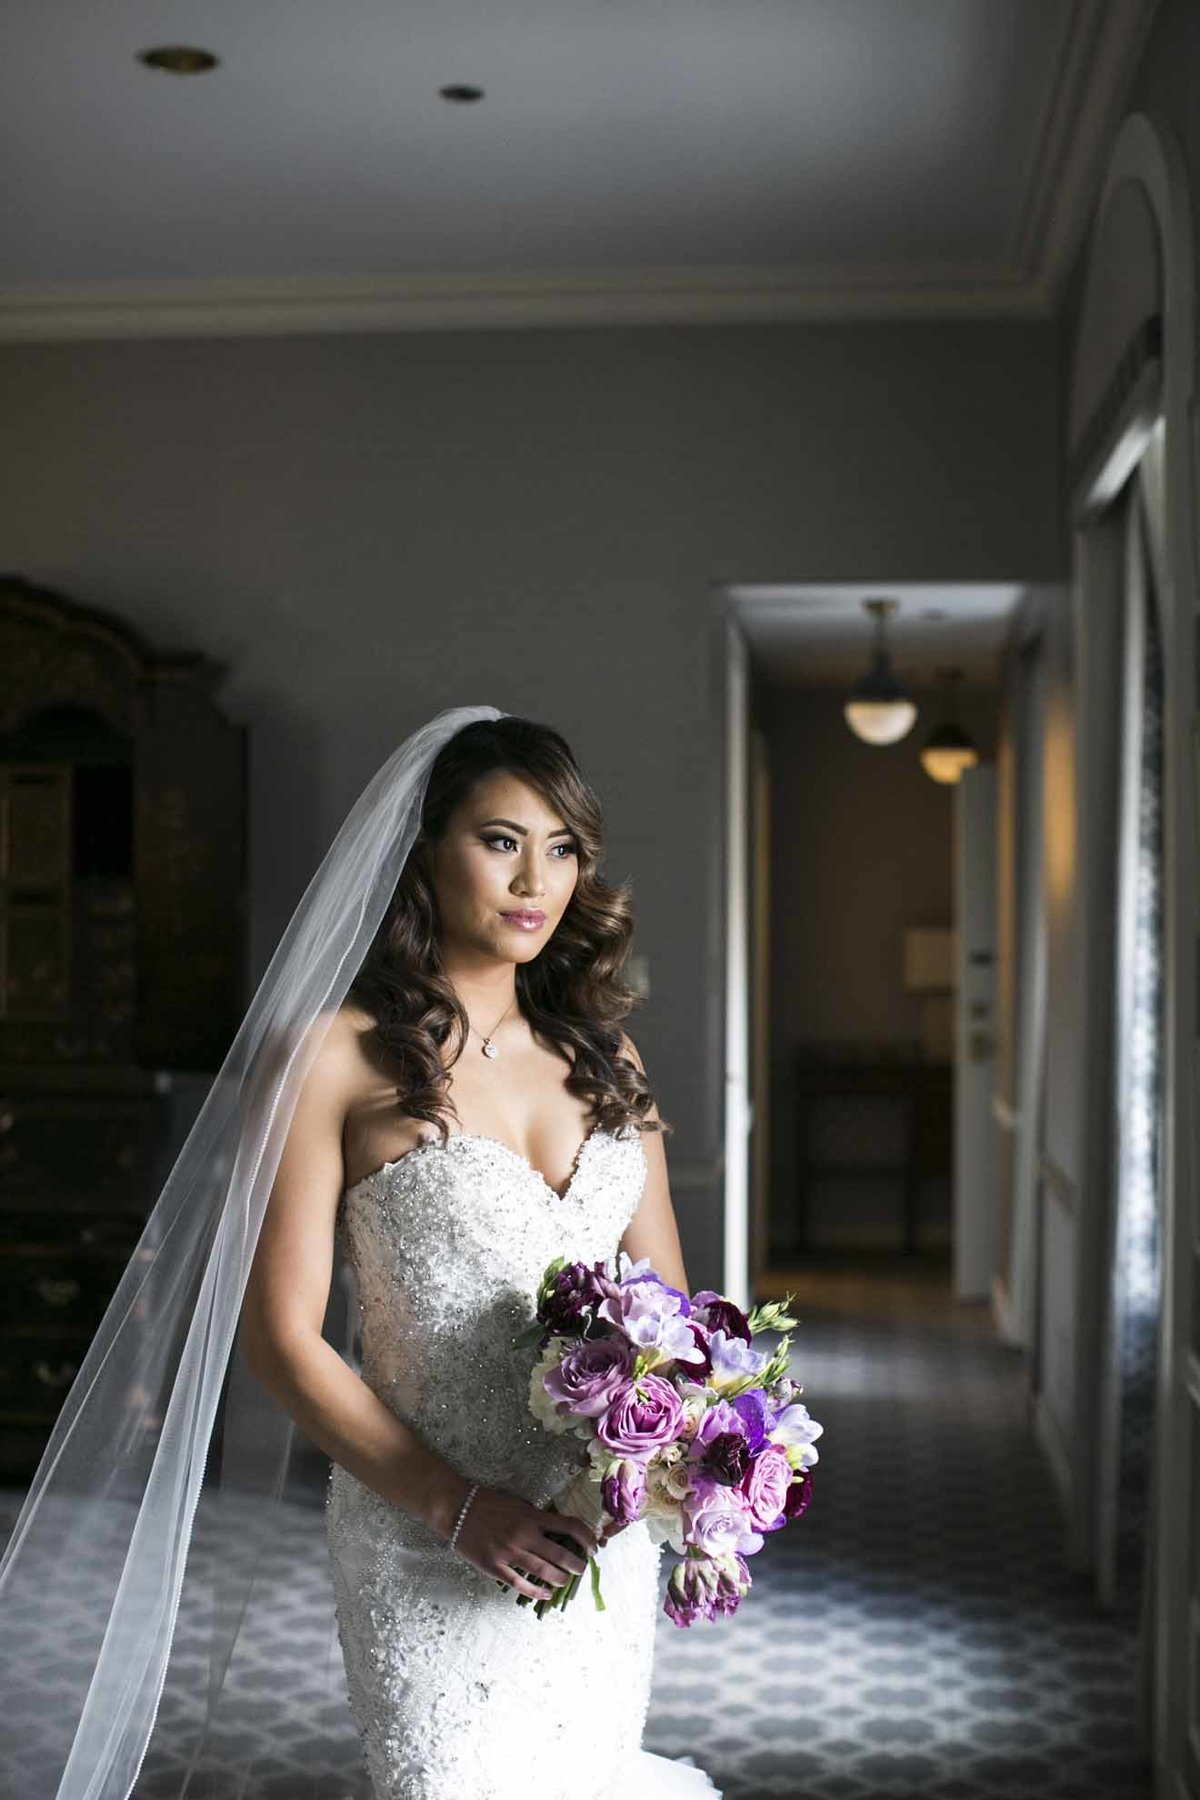 Our beautiful bride Mara holding a purple bridal bouquet.